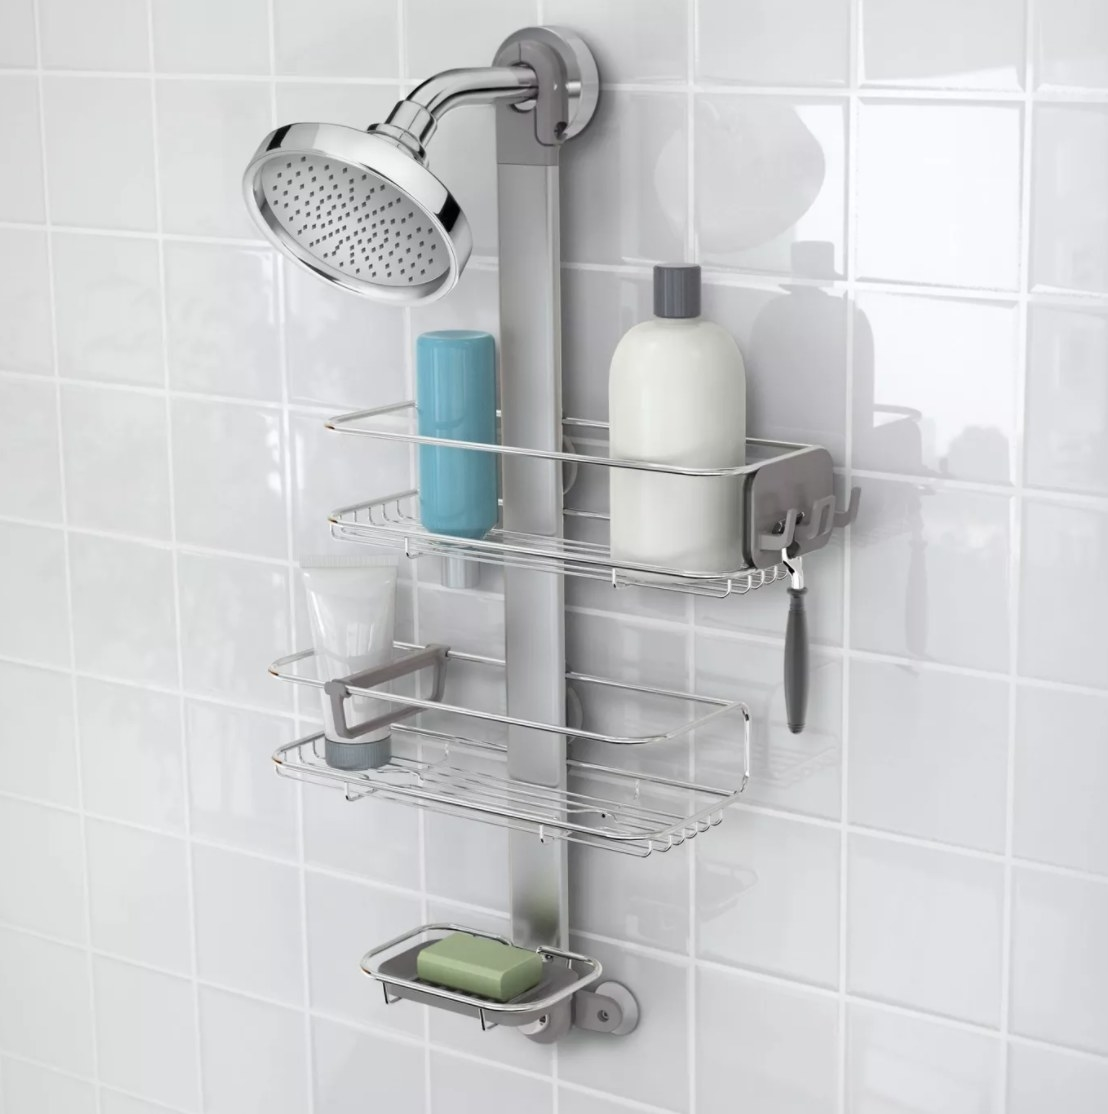 The silver shower caddy